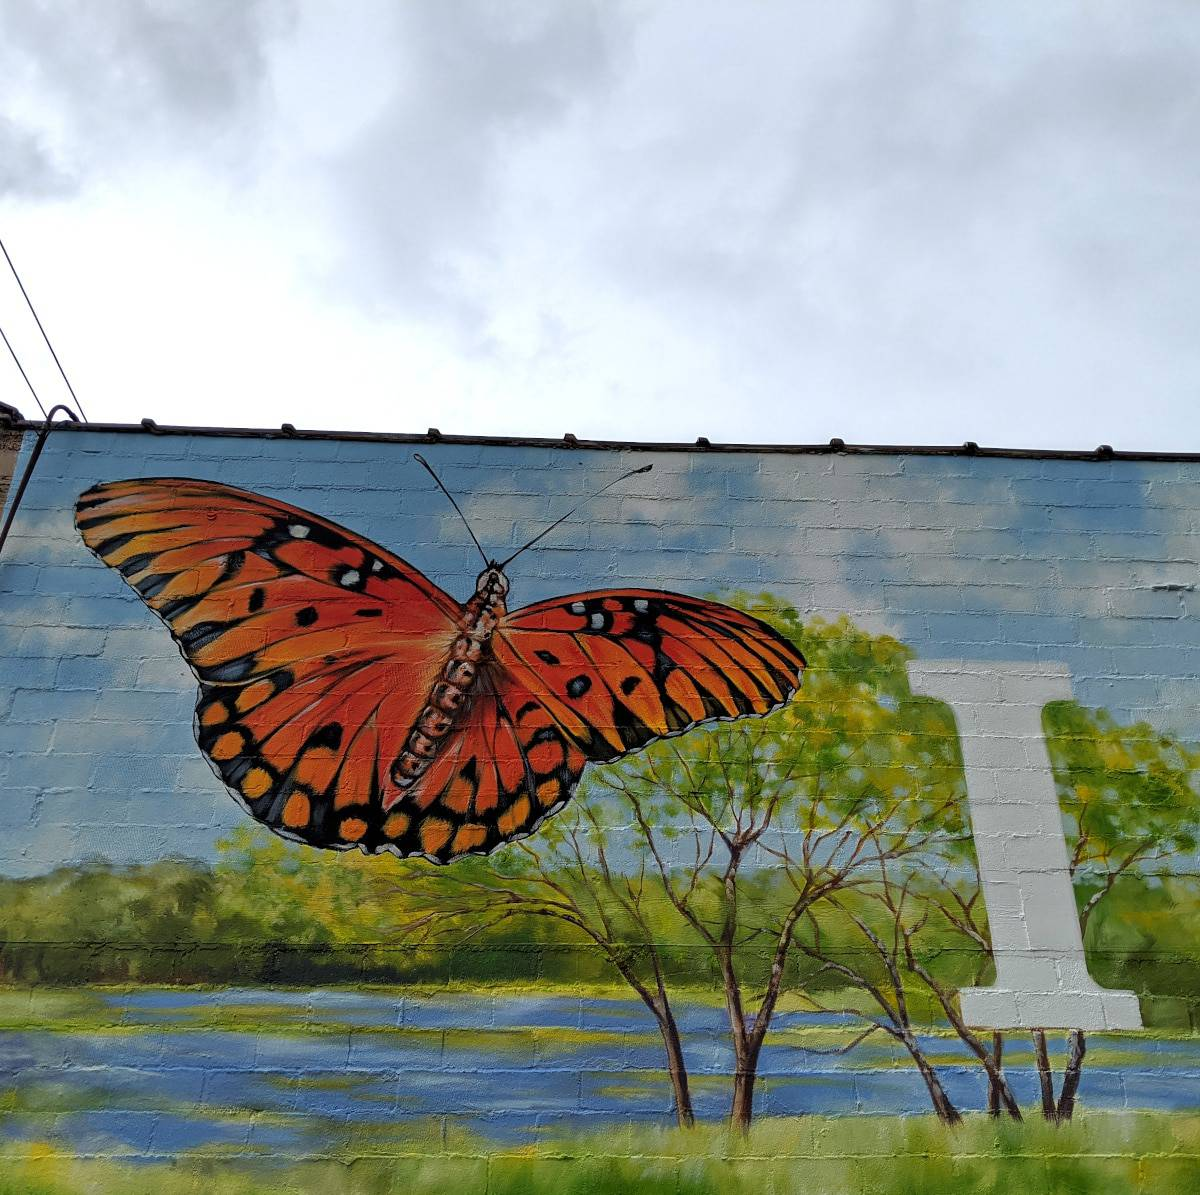 Butterfly on Arts District Mural